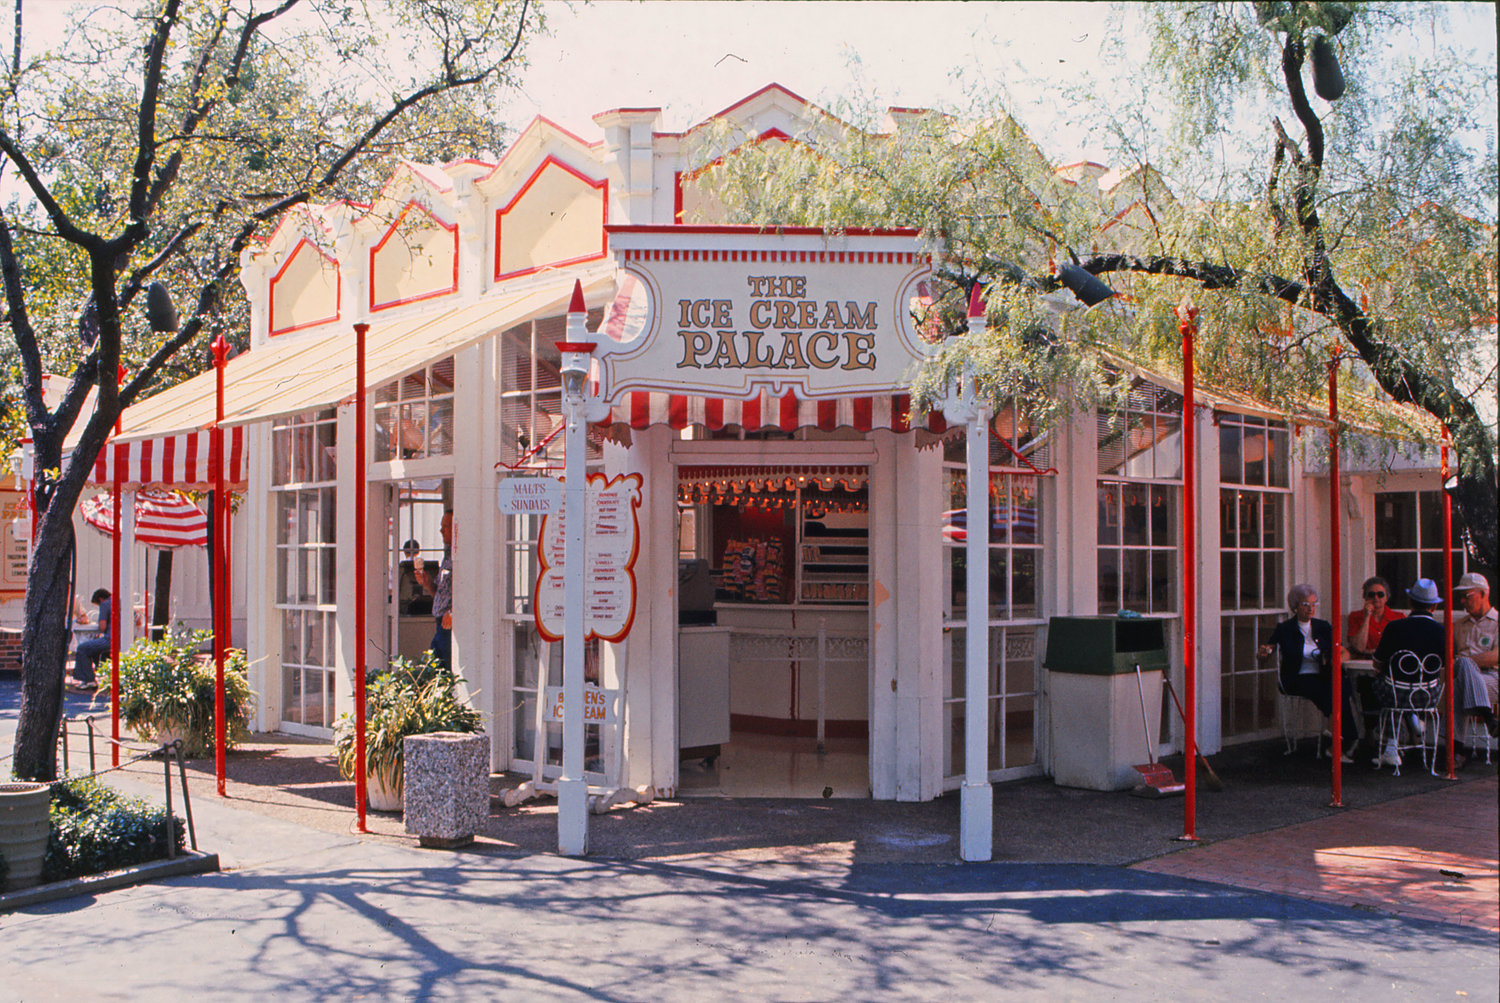 An early look at this location as The Ice Cream Palace.